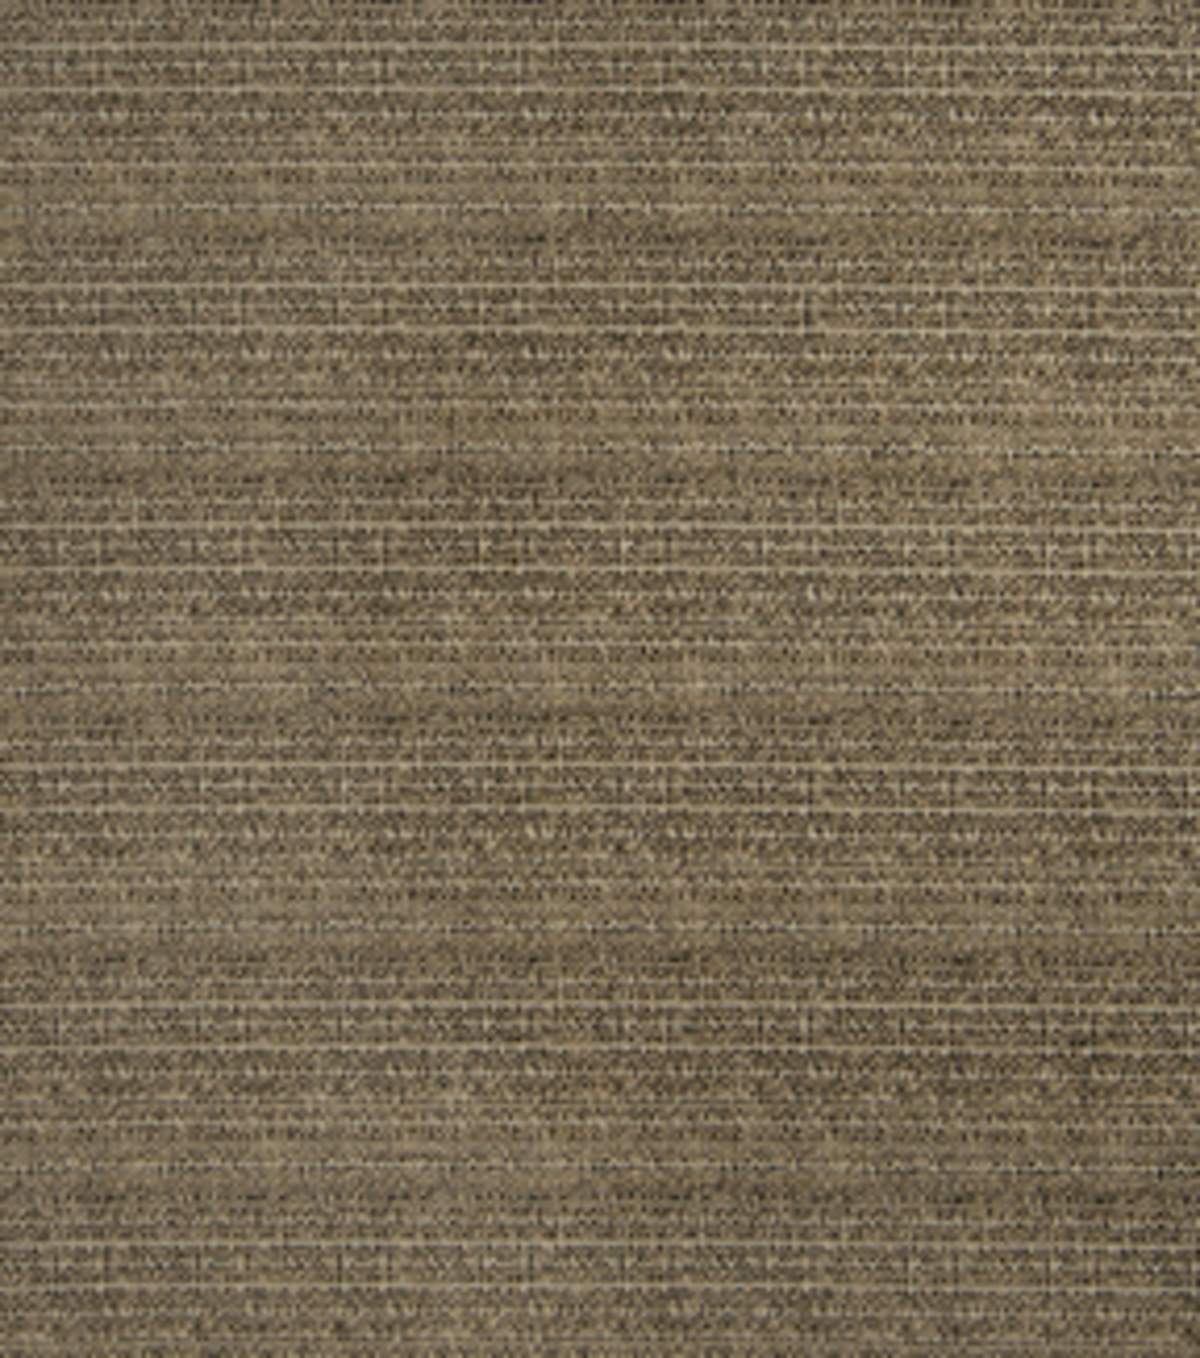 Home Decor 8\u0022x8\u0022 Fabric Swatch-Eaton Square Pinpoint Granite